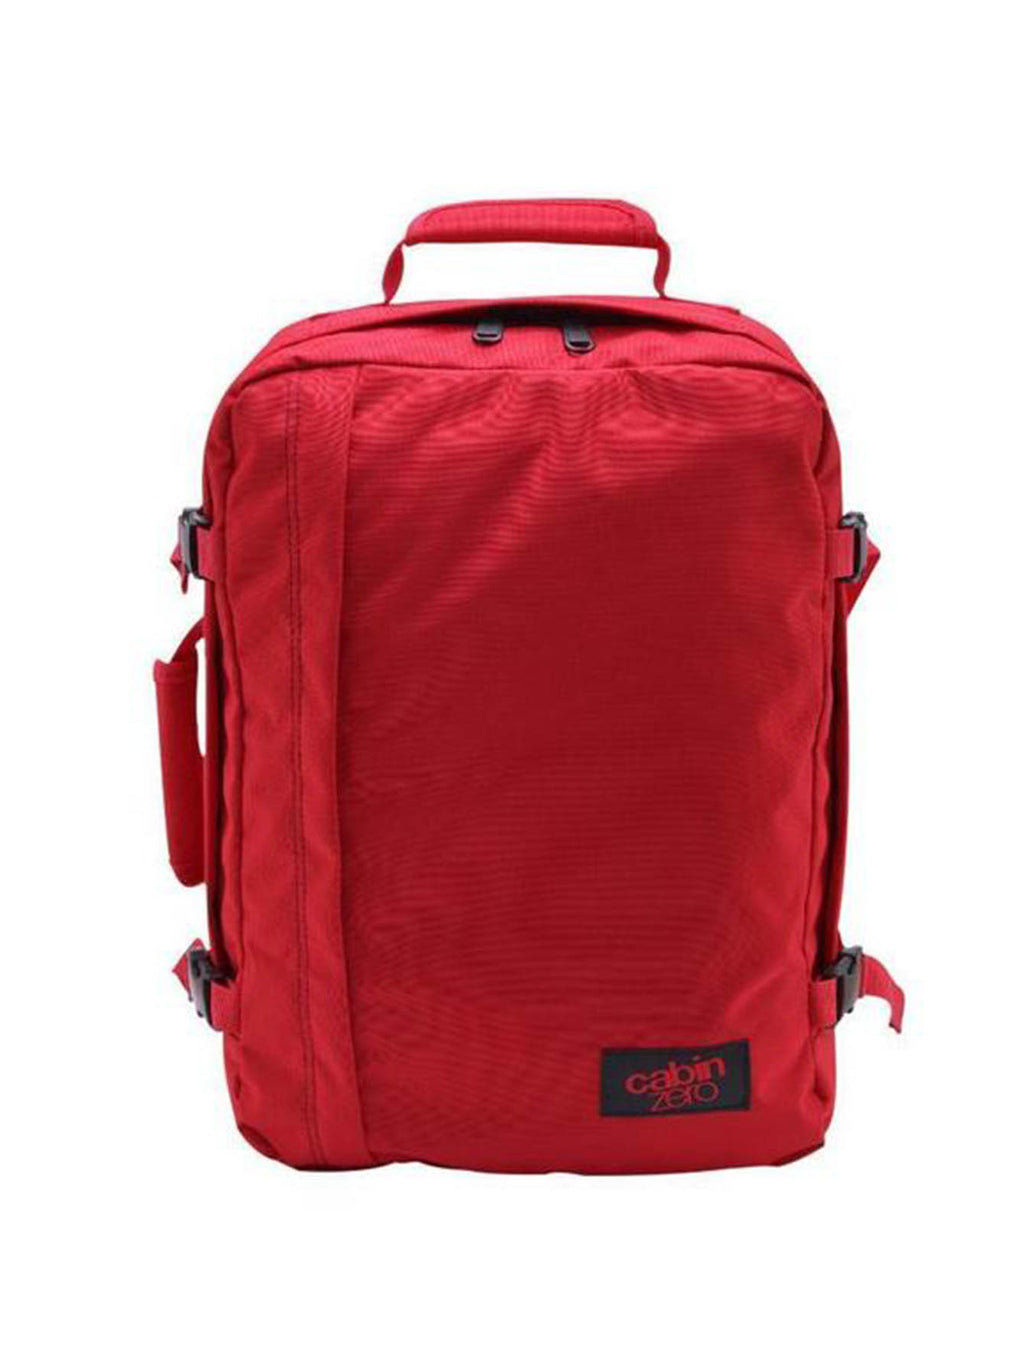 Cabinzero Classic 36L Ultra-Light Cabin Bag in Naga Red Color